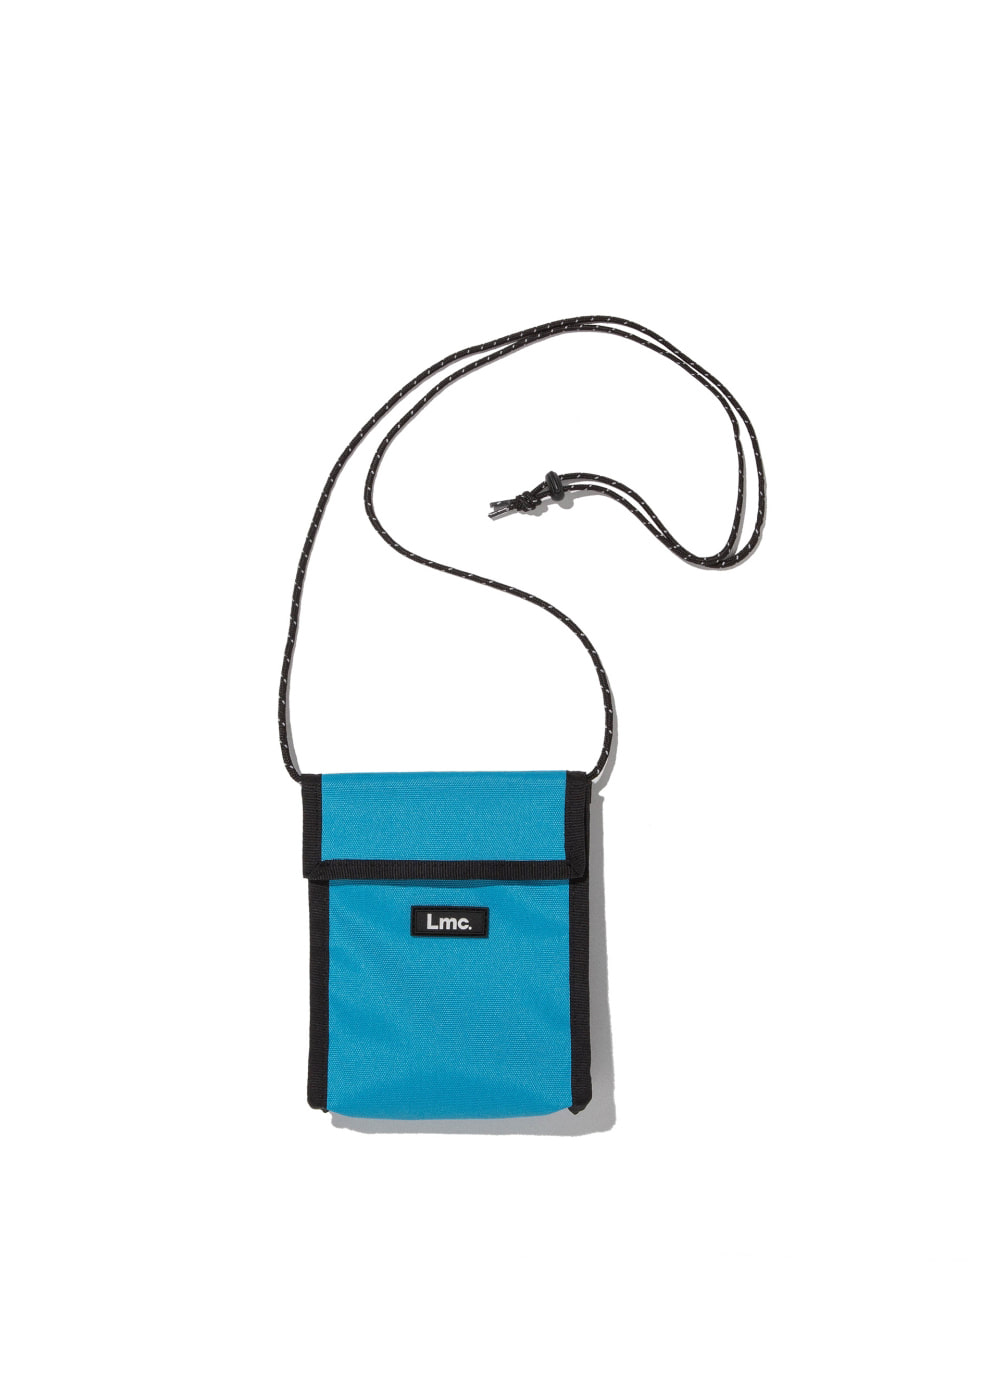 LMC NECK POUCH BAG sky blue